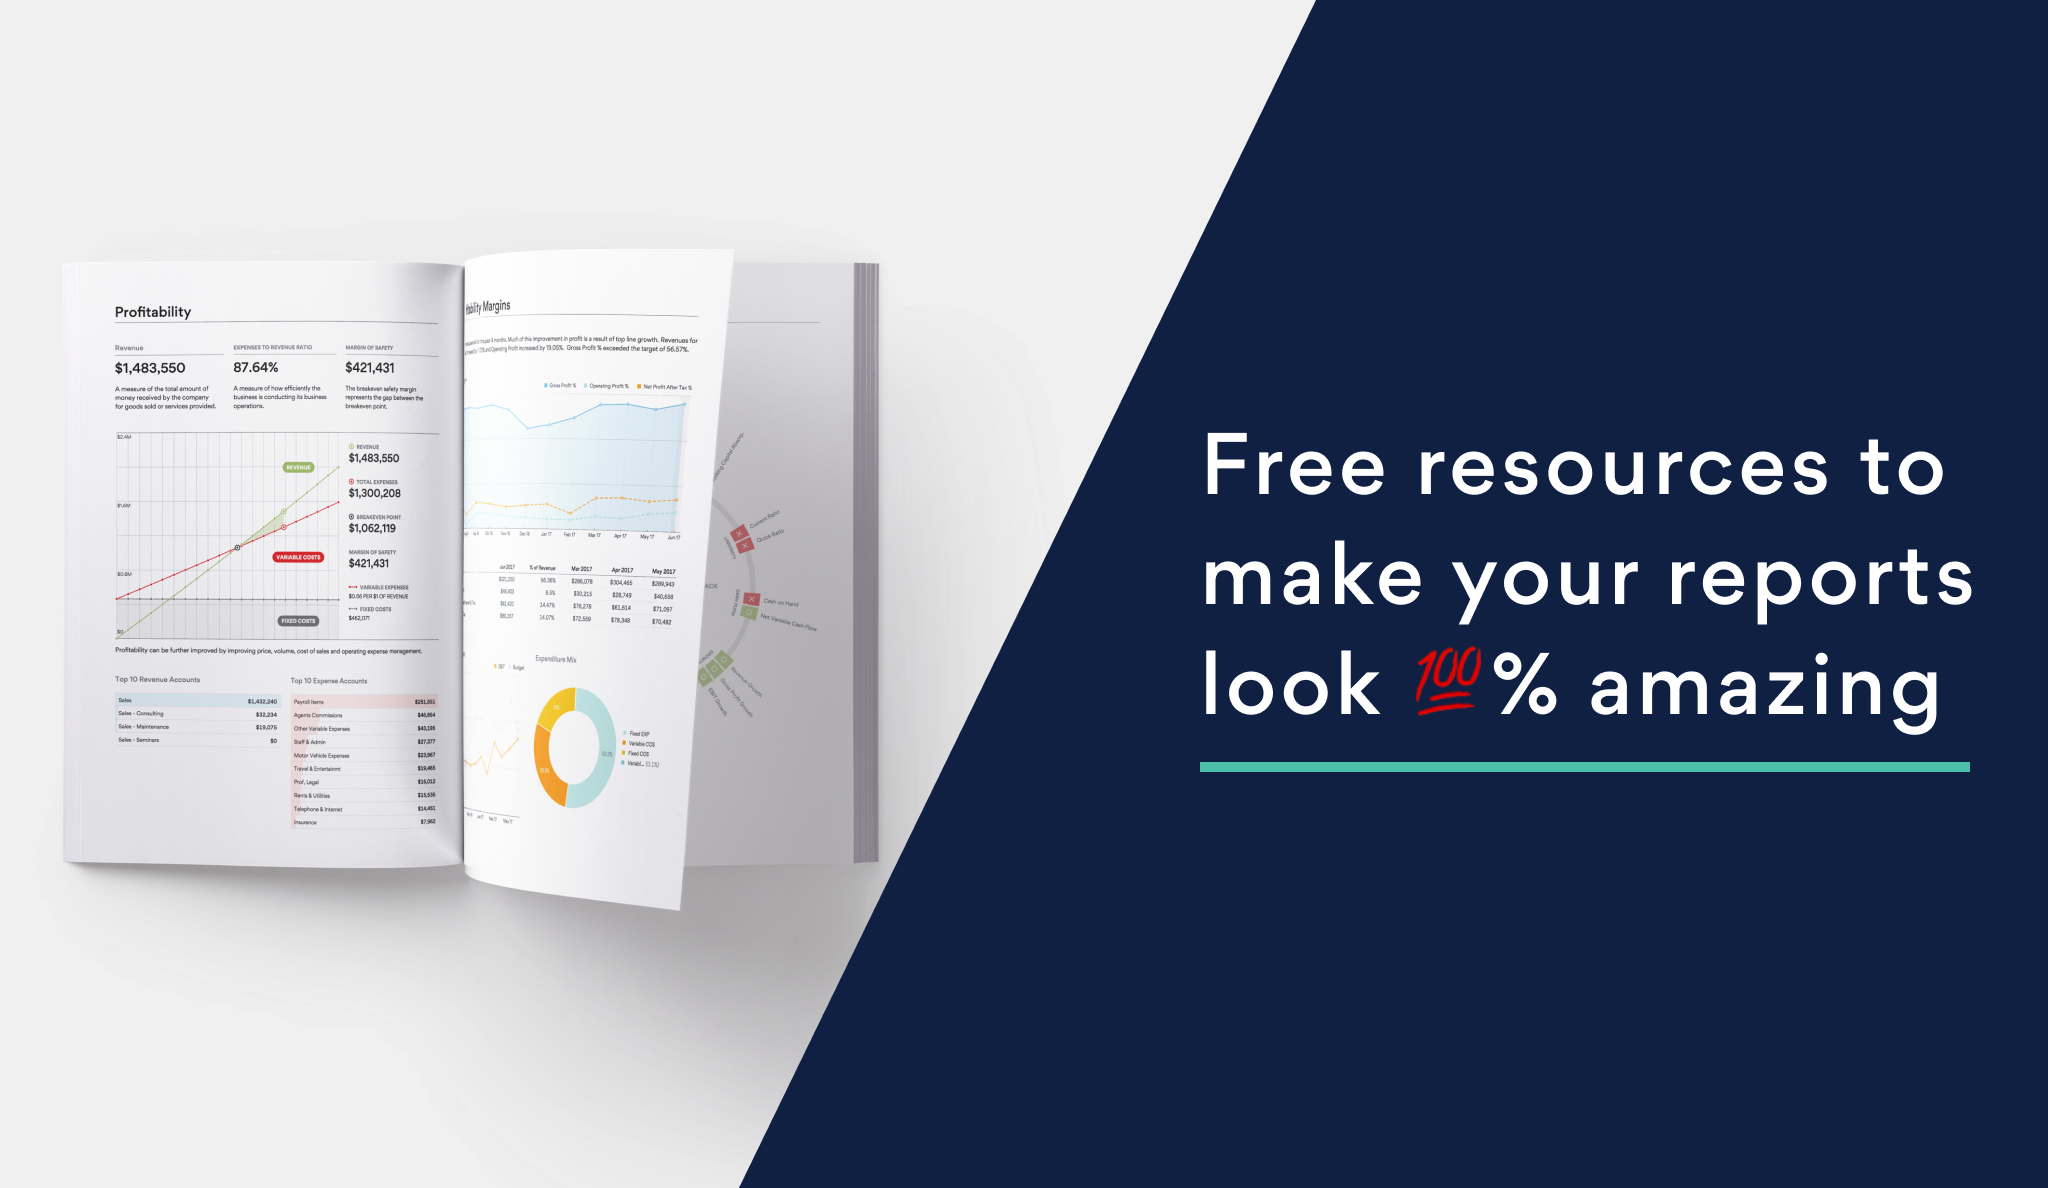 resources to make your reports amazing